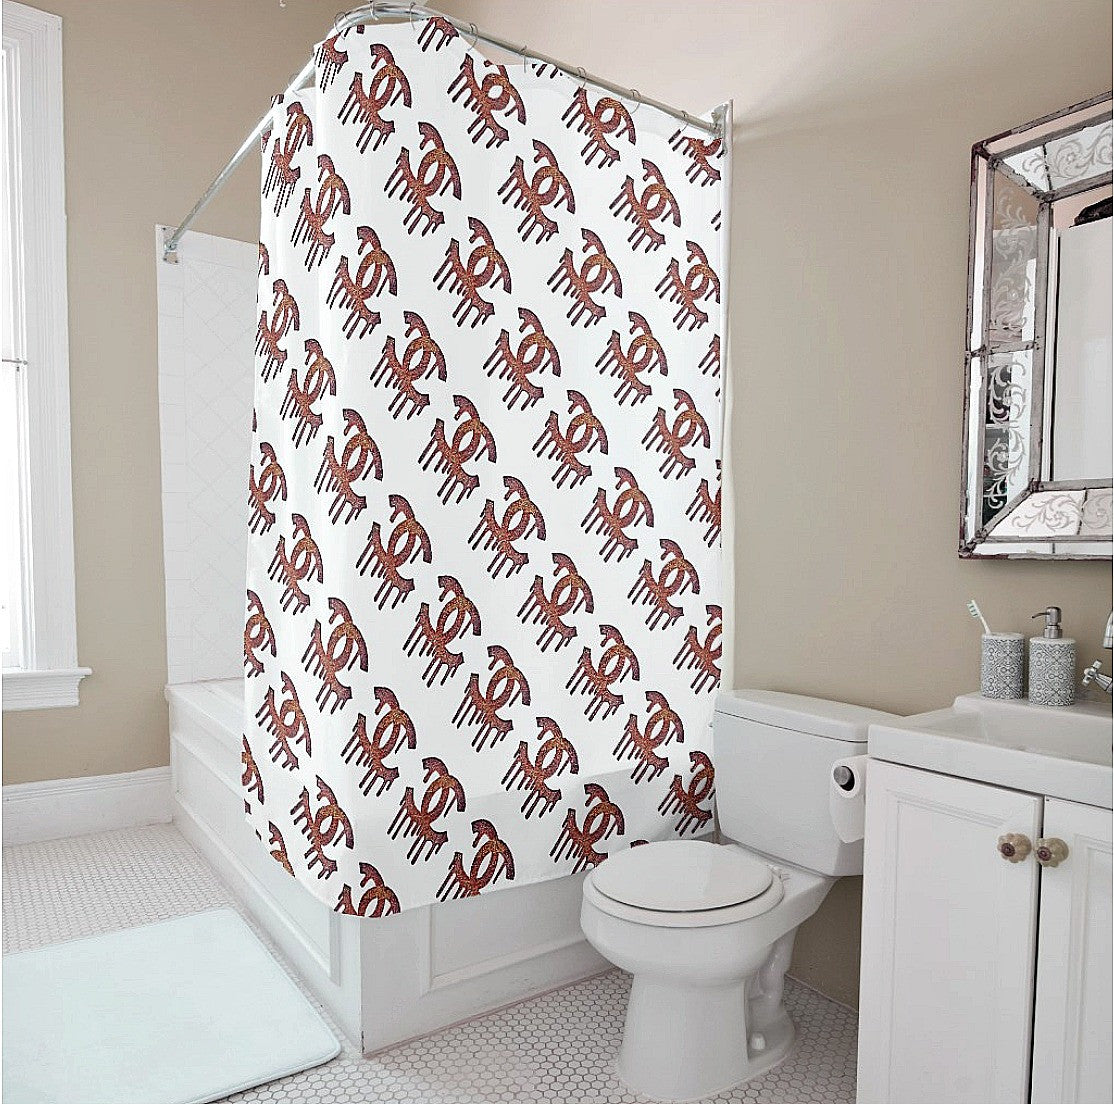 Shower Curtain - Dripping C's Multi - CRYSTAHHLED